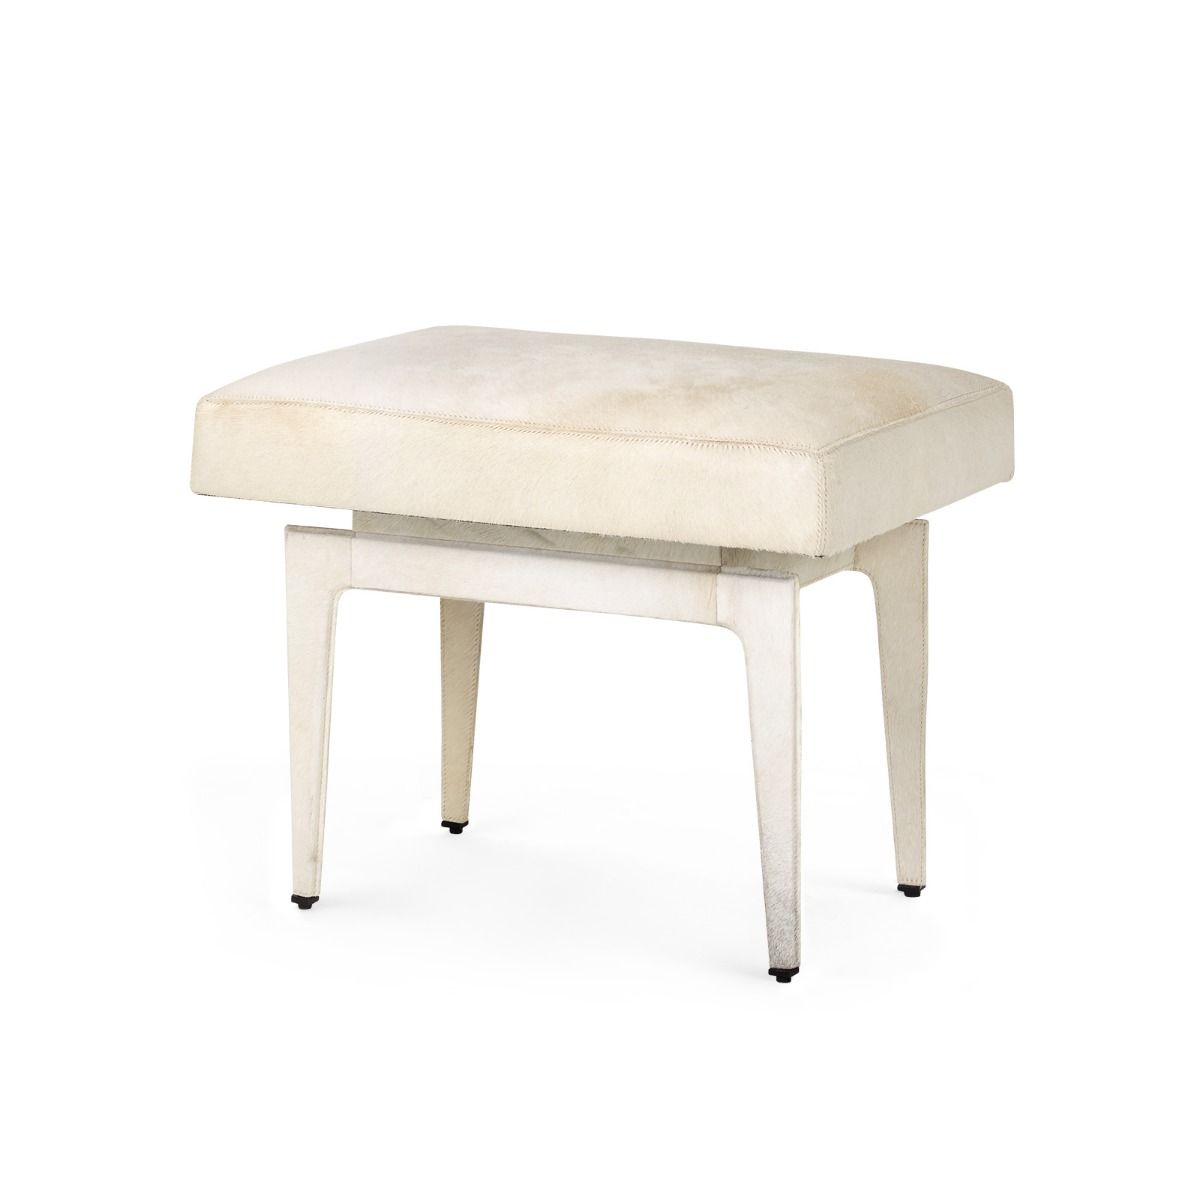 Bungalow 5 - Winston Stool - White-Bungalow 5-Blue Hand Home